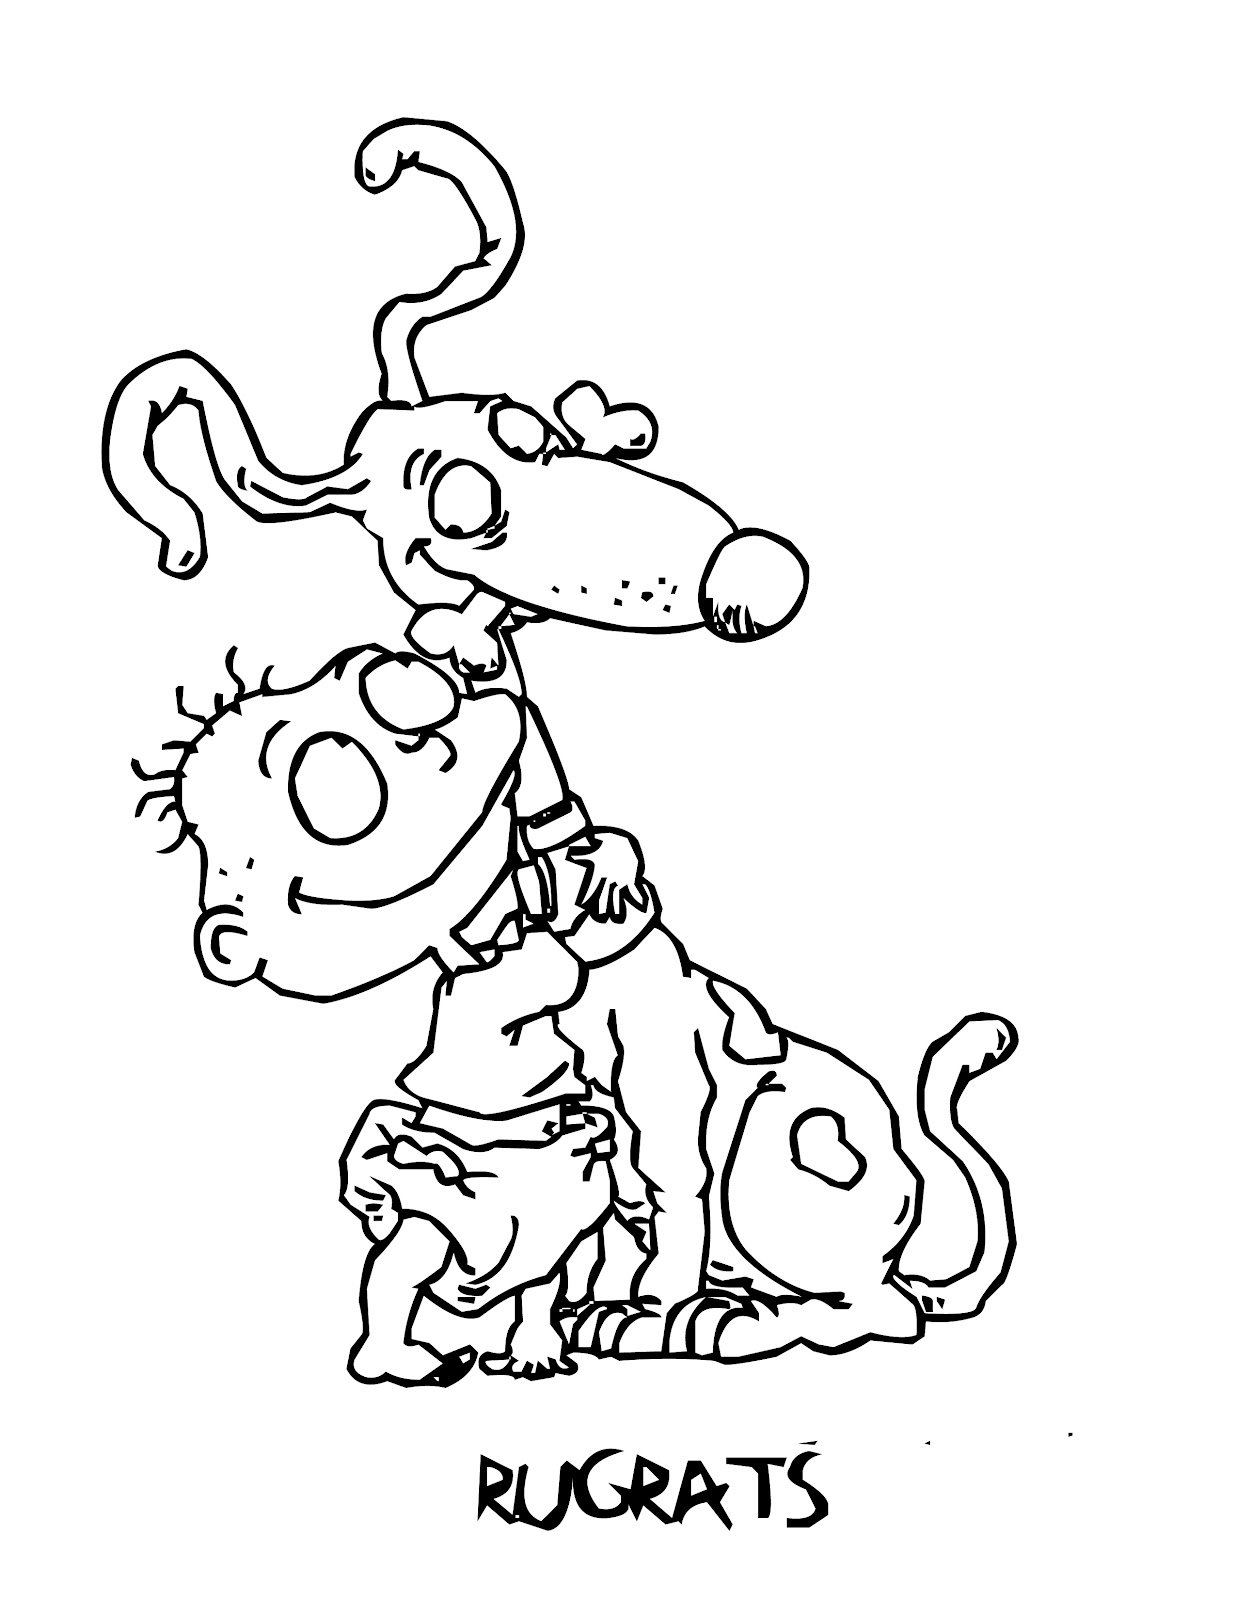 free printable rugrats coloring pages for kids